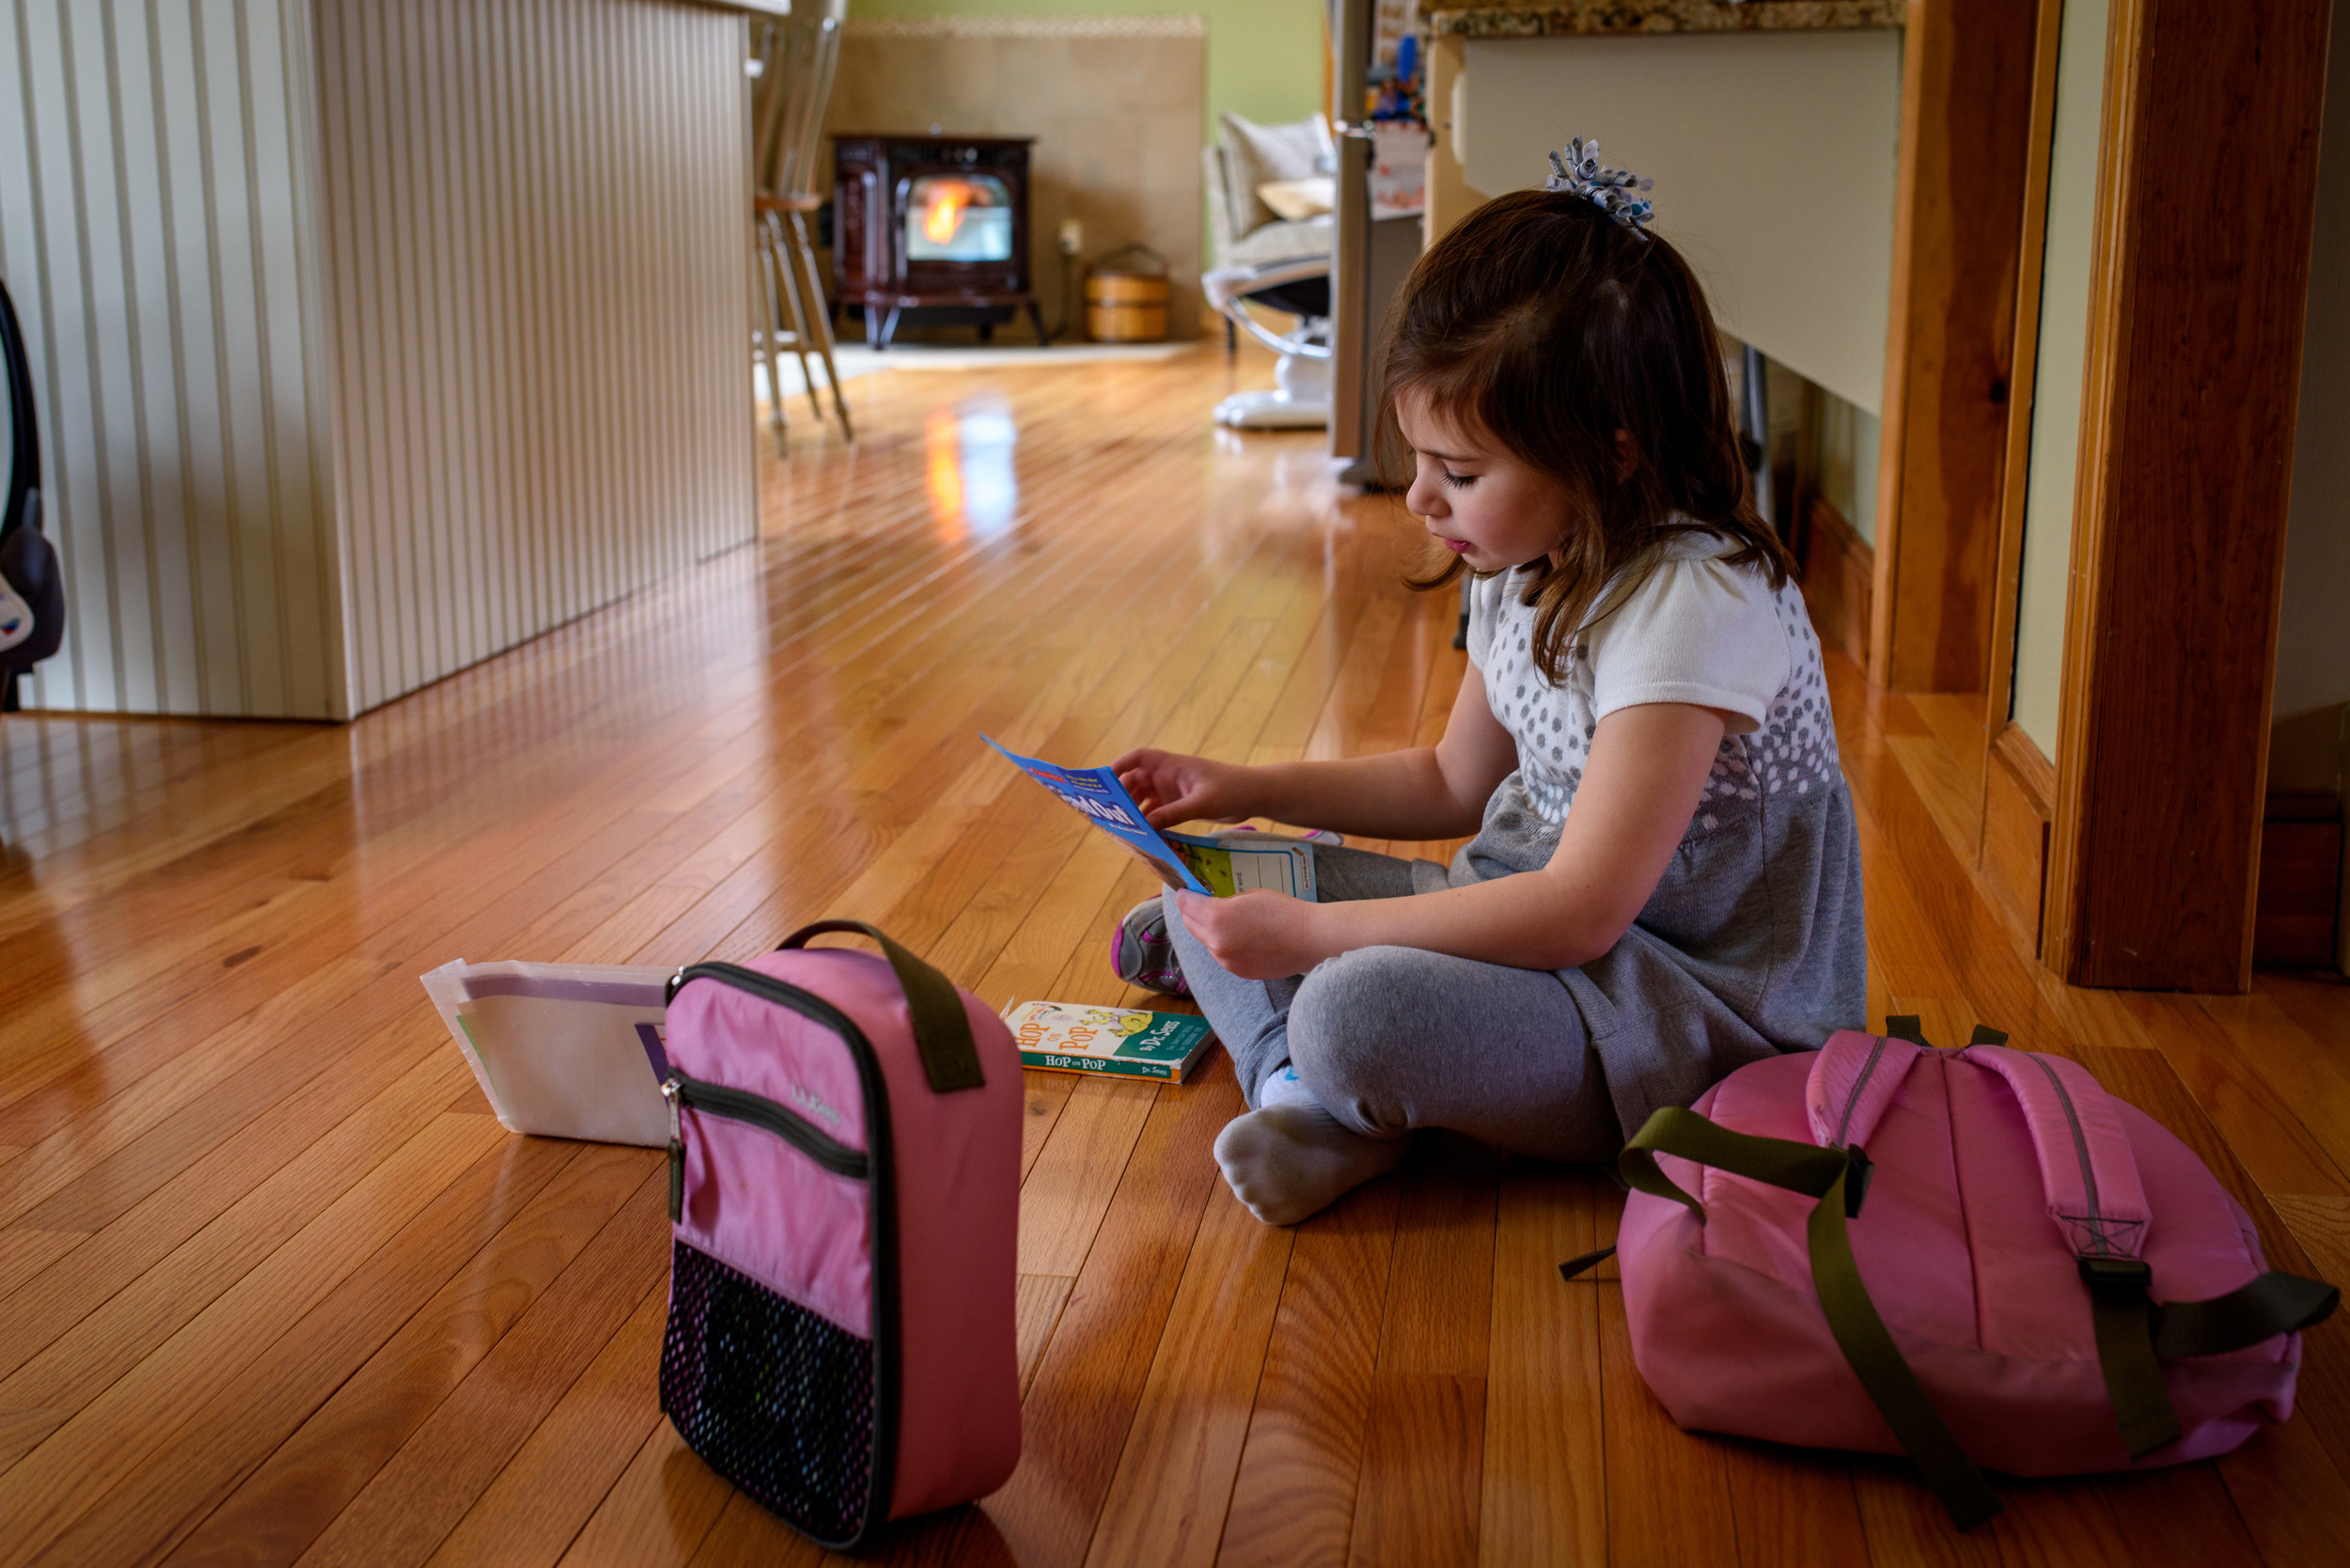 Daughter Opens Backpack After School